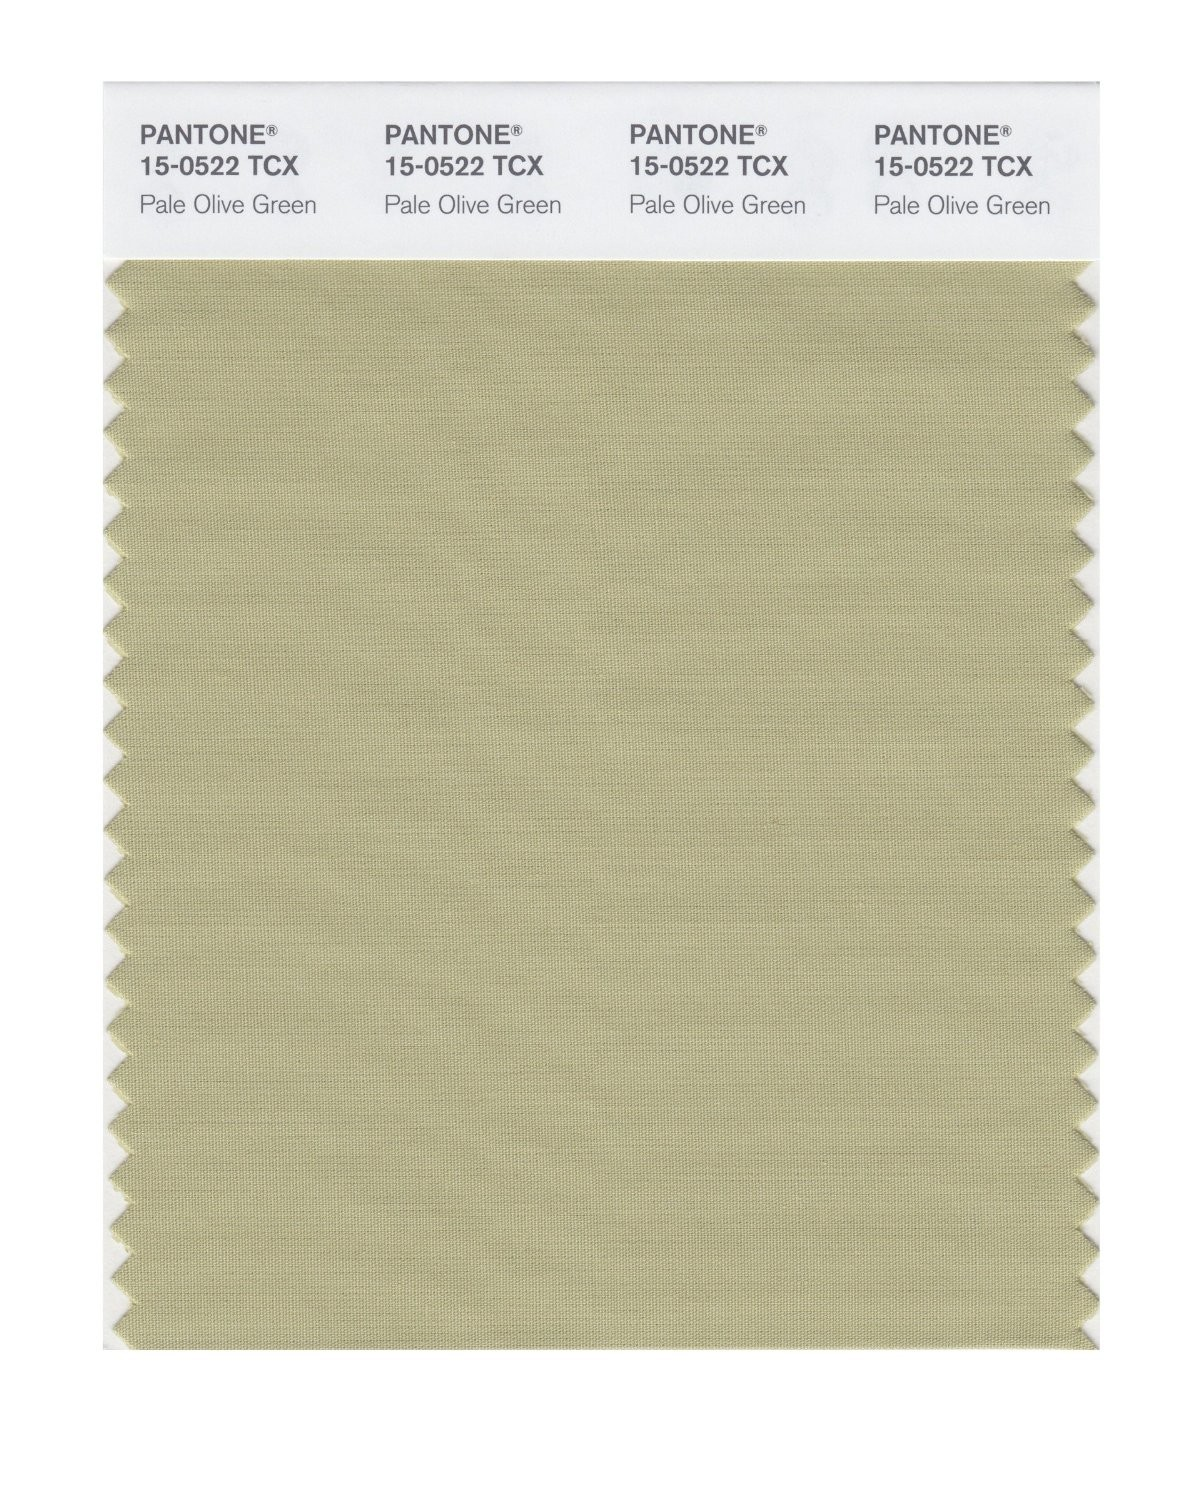 Pantone 15-0522 TCX Swatch Card Pale Olive Green